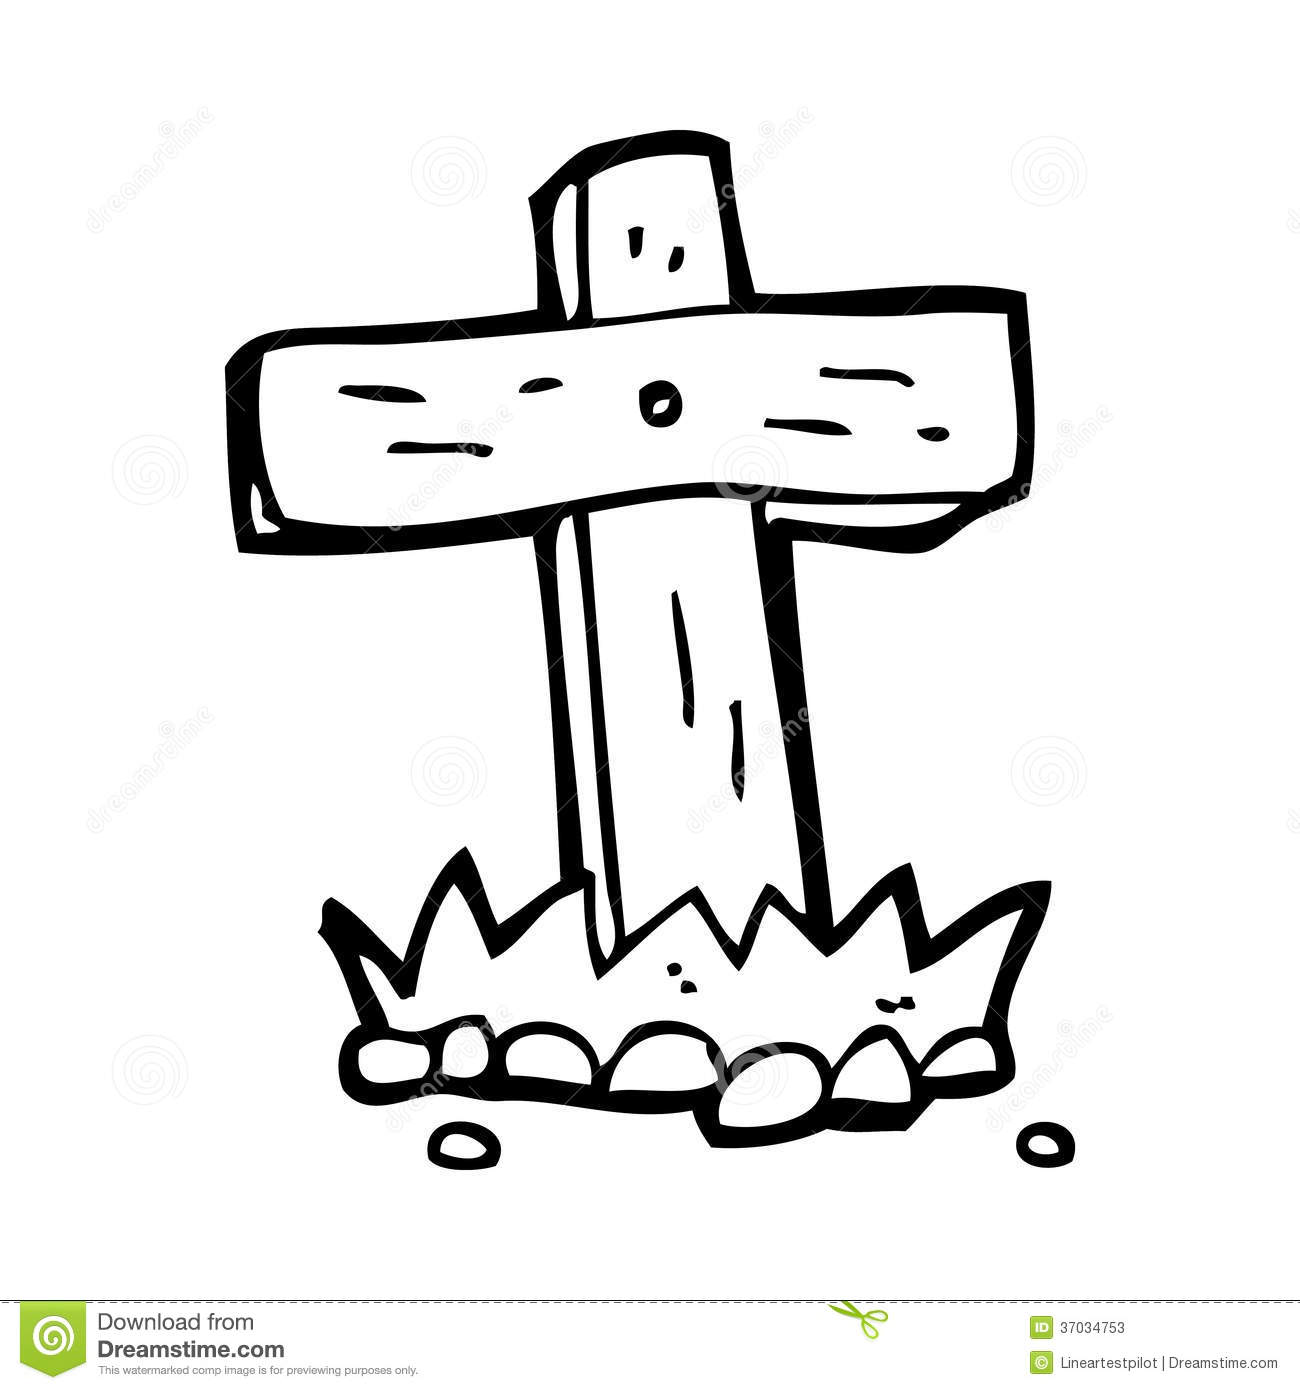 Cartoon wooden cross grave stock illustration Image of